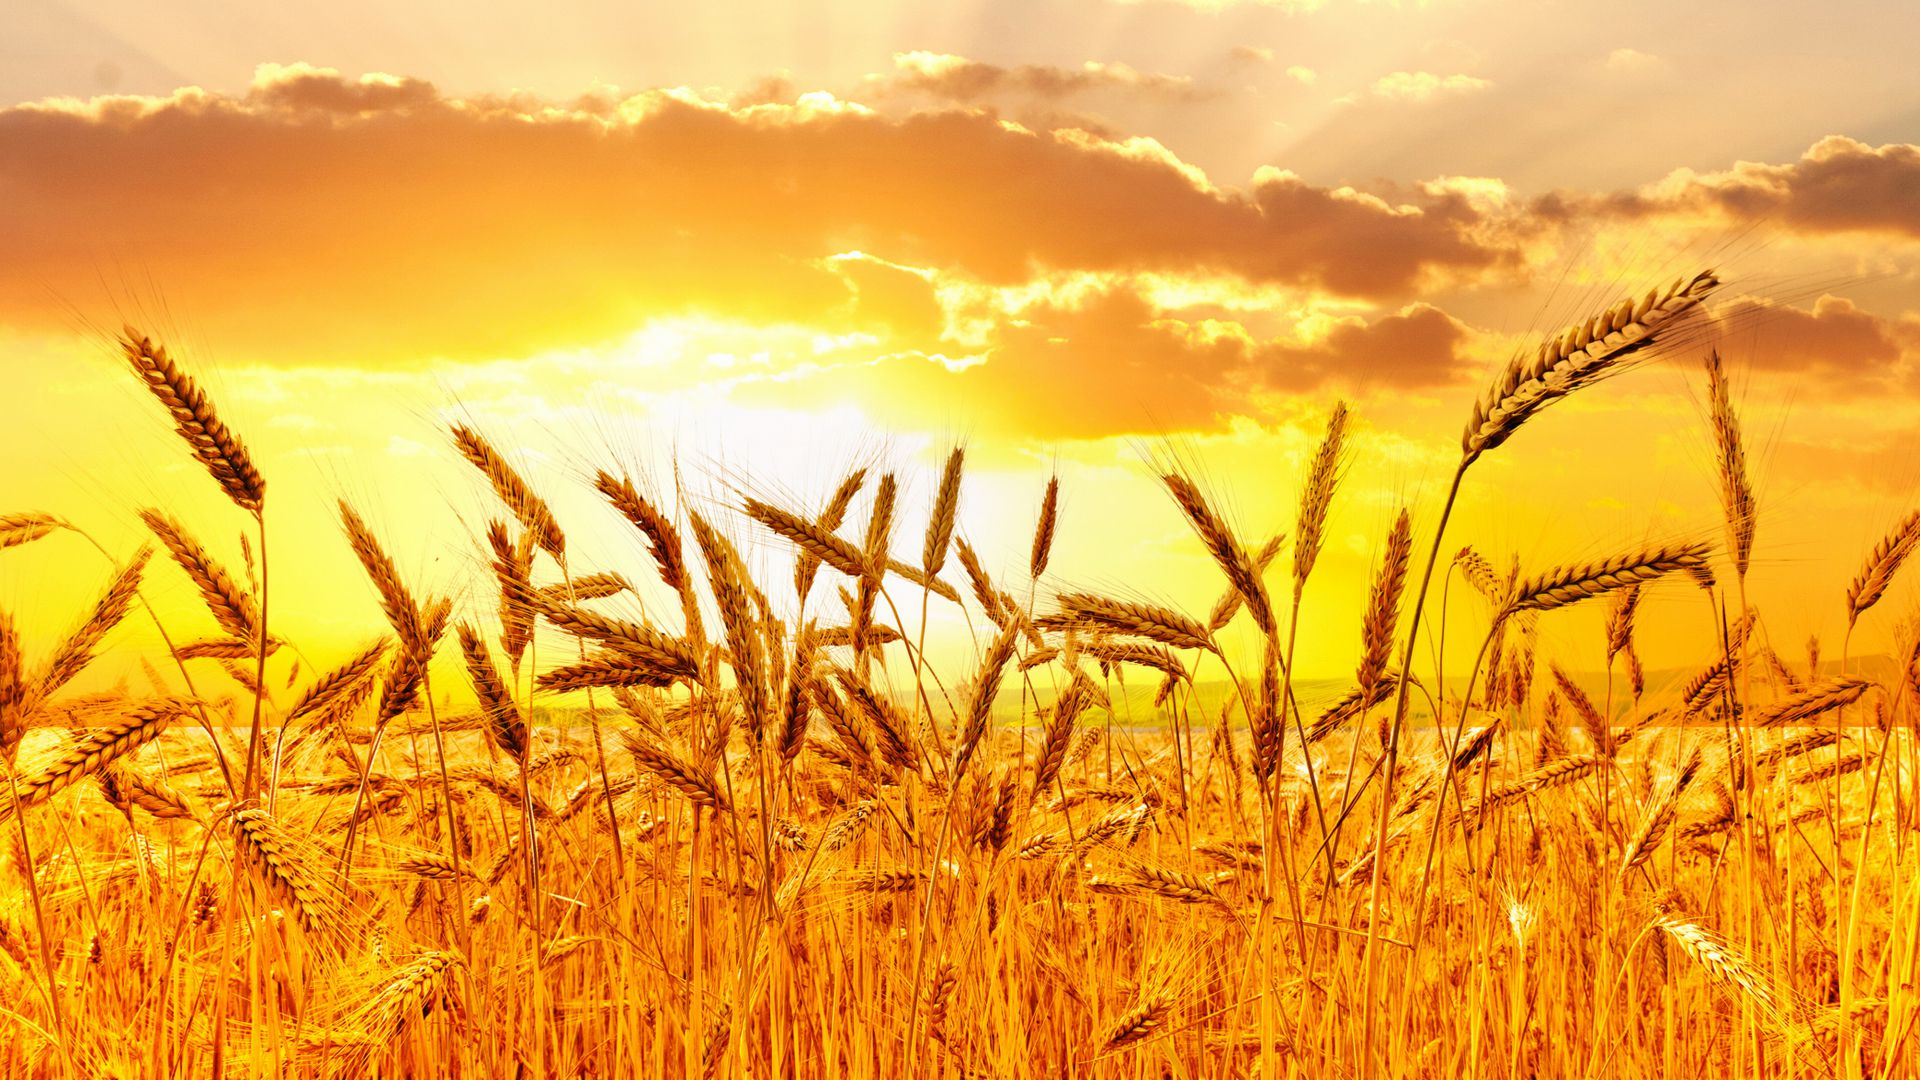 Wallpaper Field 4k Hd Wallpaper Wheat Spikes Sky: Wallpaper Wheat, 5k, 4k Wallpaper, Meadows, Sunset, Nature